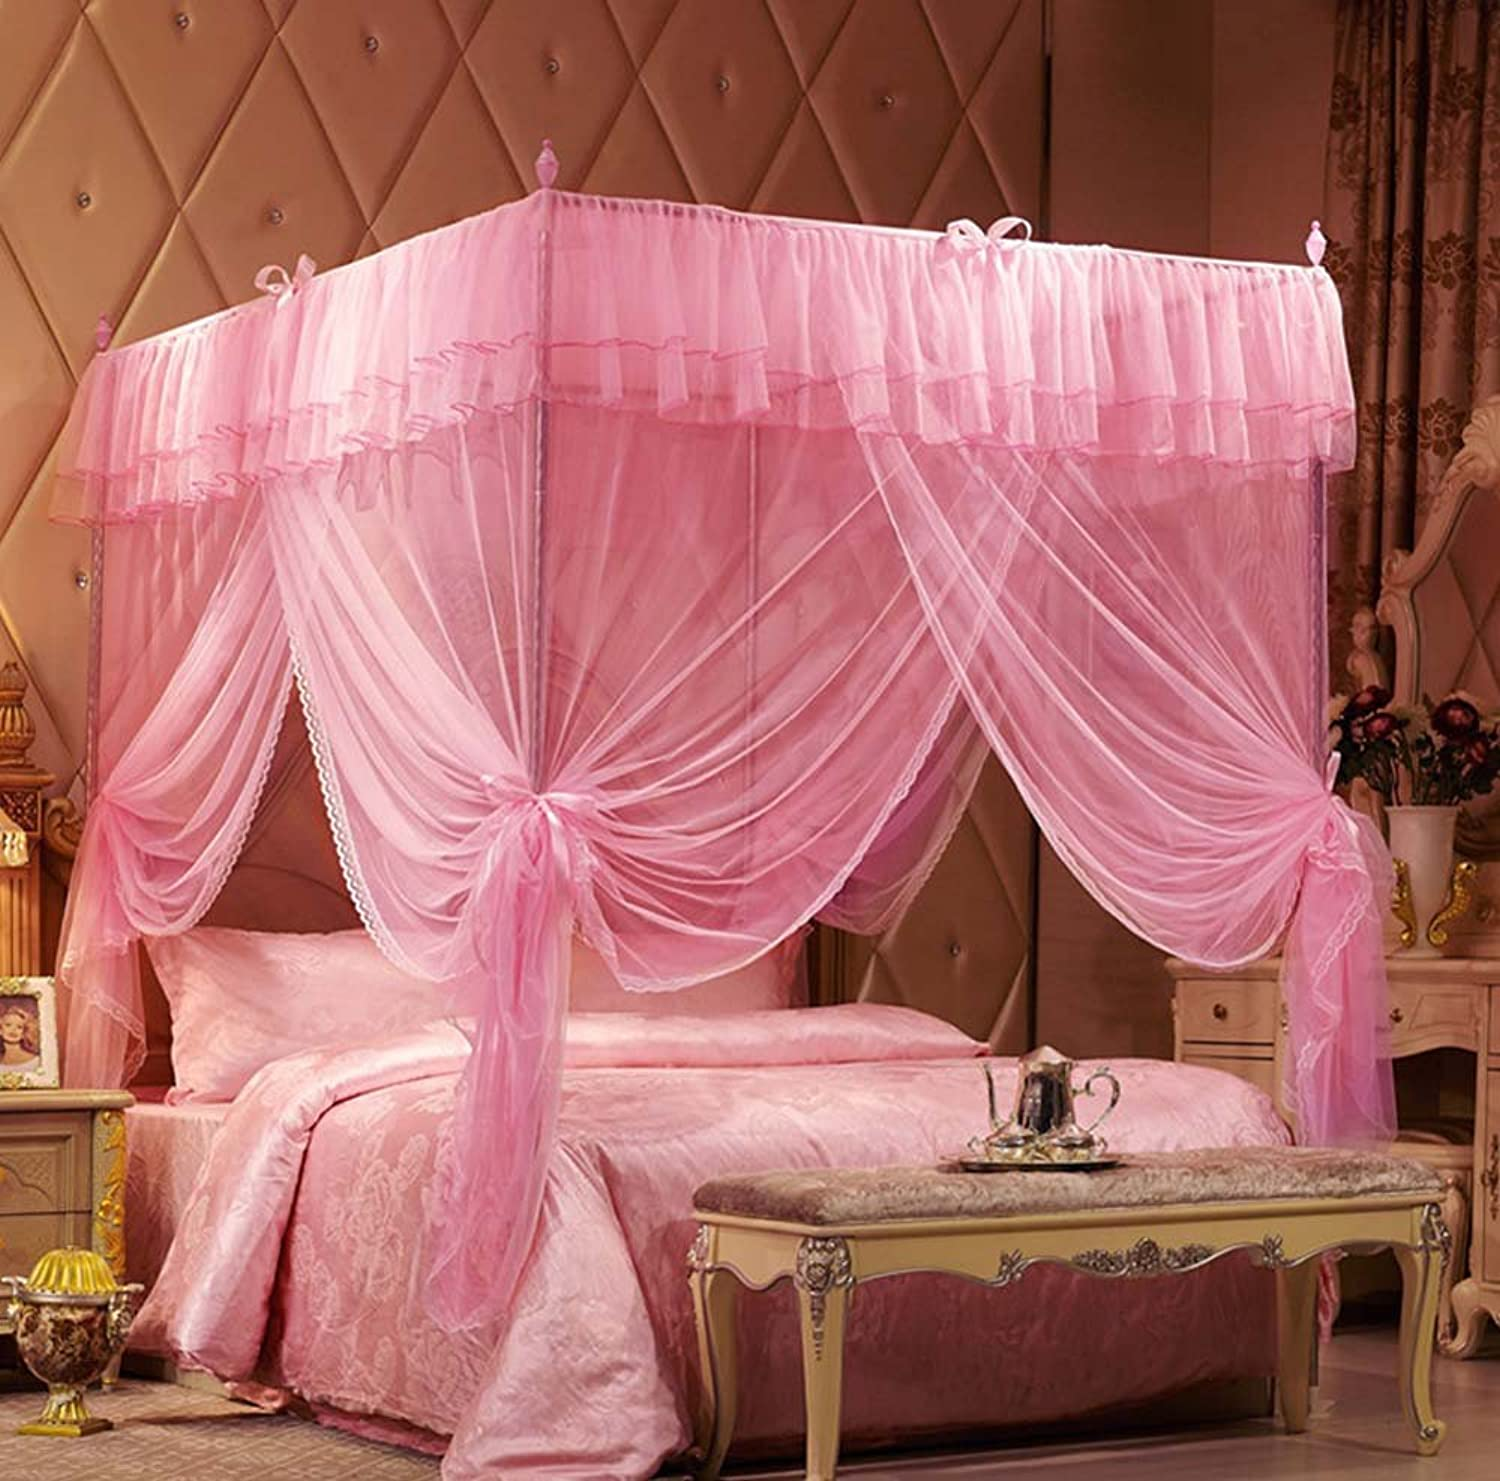 Nattey Pink Princess Bedding Canopy Mosquito Netting With Frame(Post) Twin Full Queen King Size (Queen)